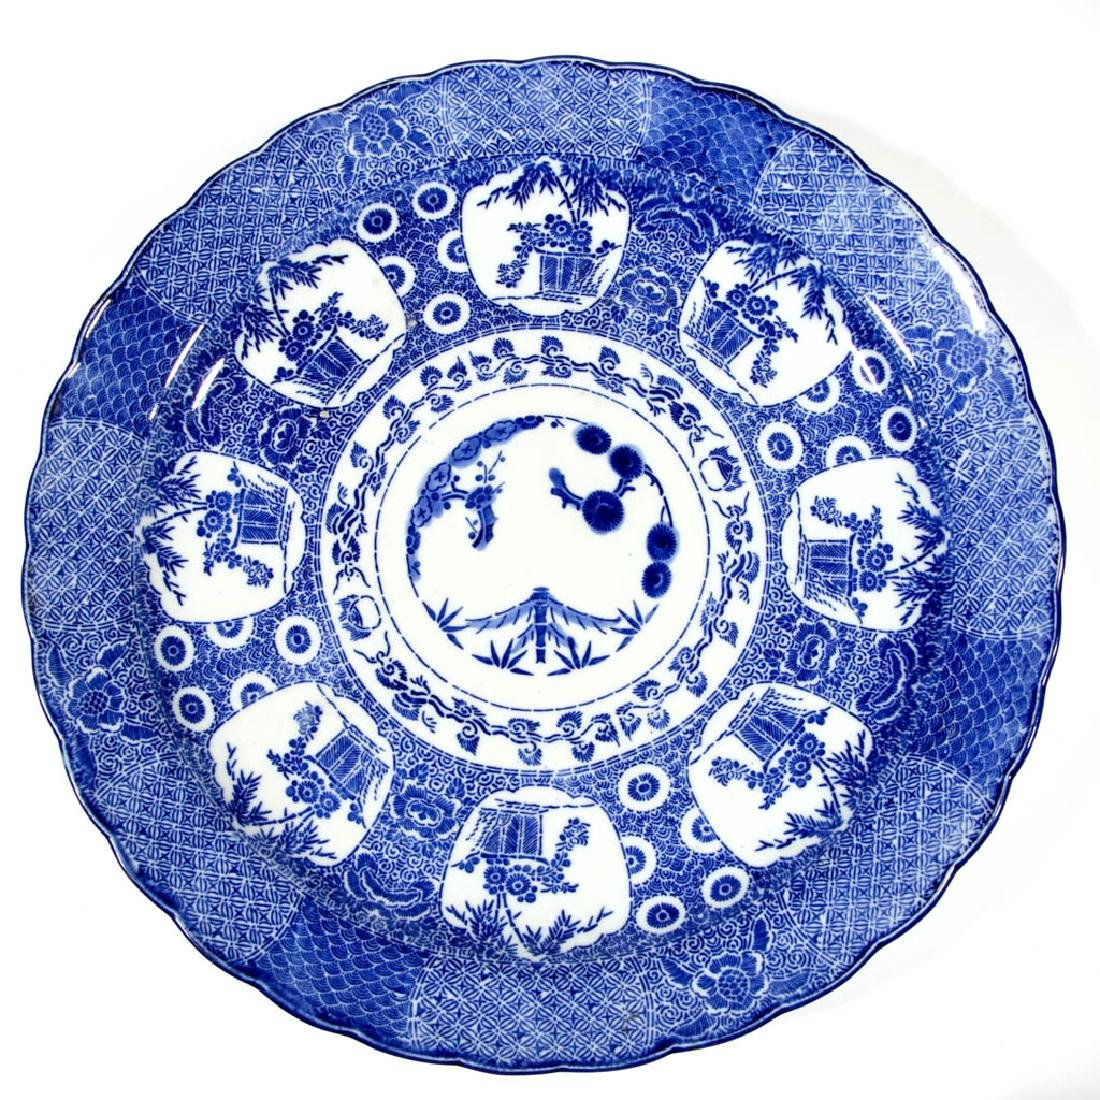 JAPANESE BLUE AND WHITE PORCELAIN CHARGER / PLATTER